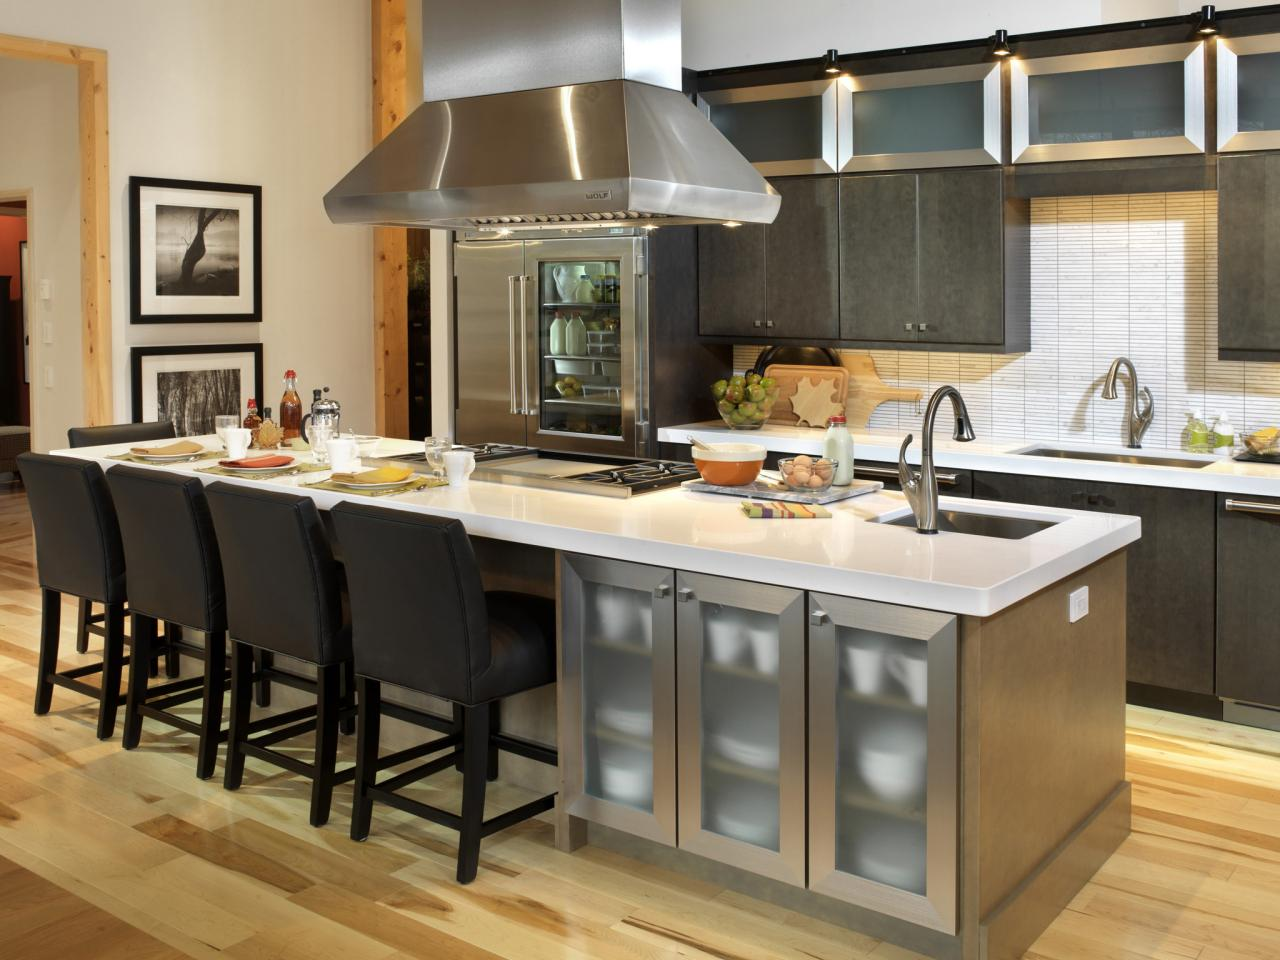 Kitchen Islands With Seating: Pictures & Ideas From HGTV ...